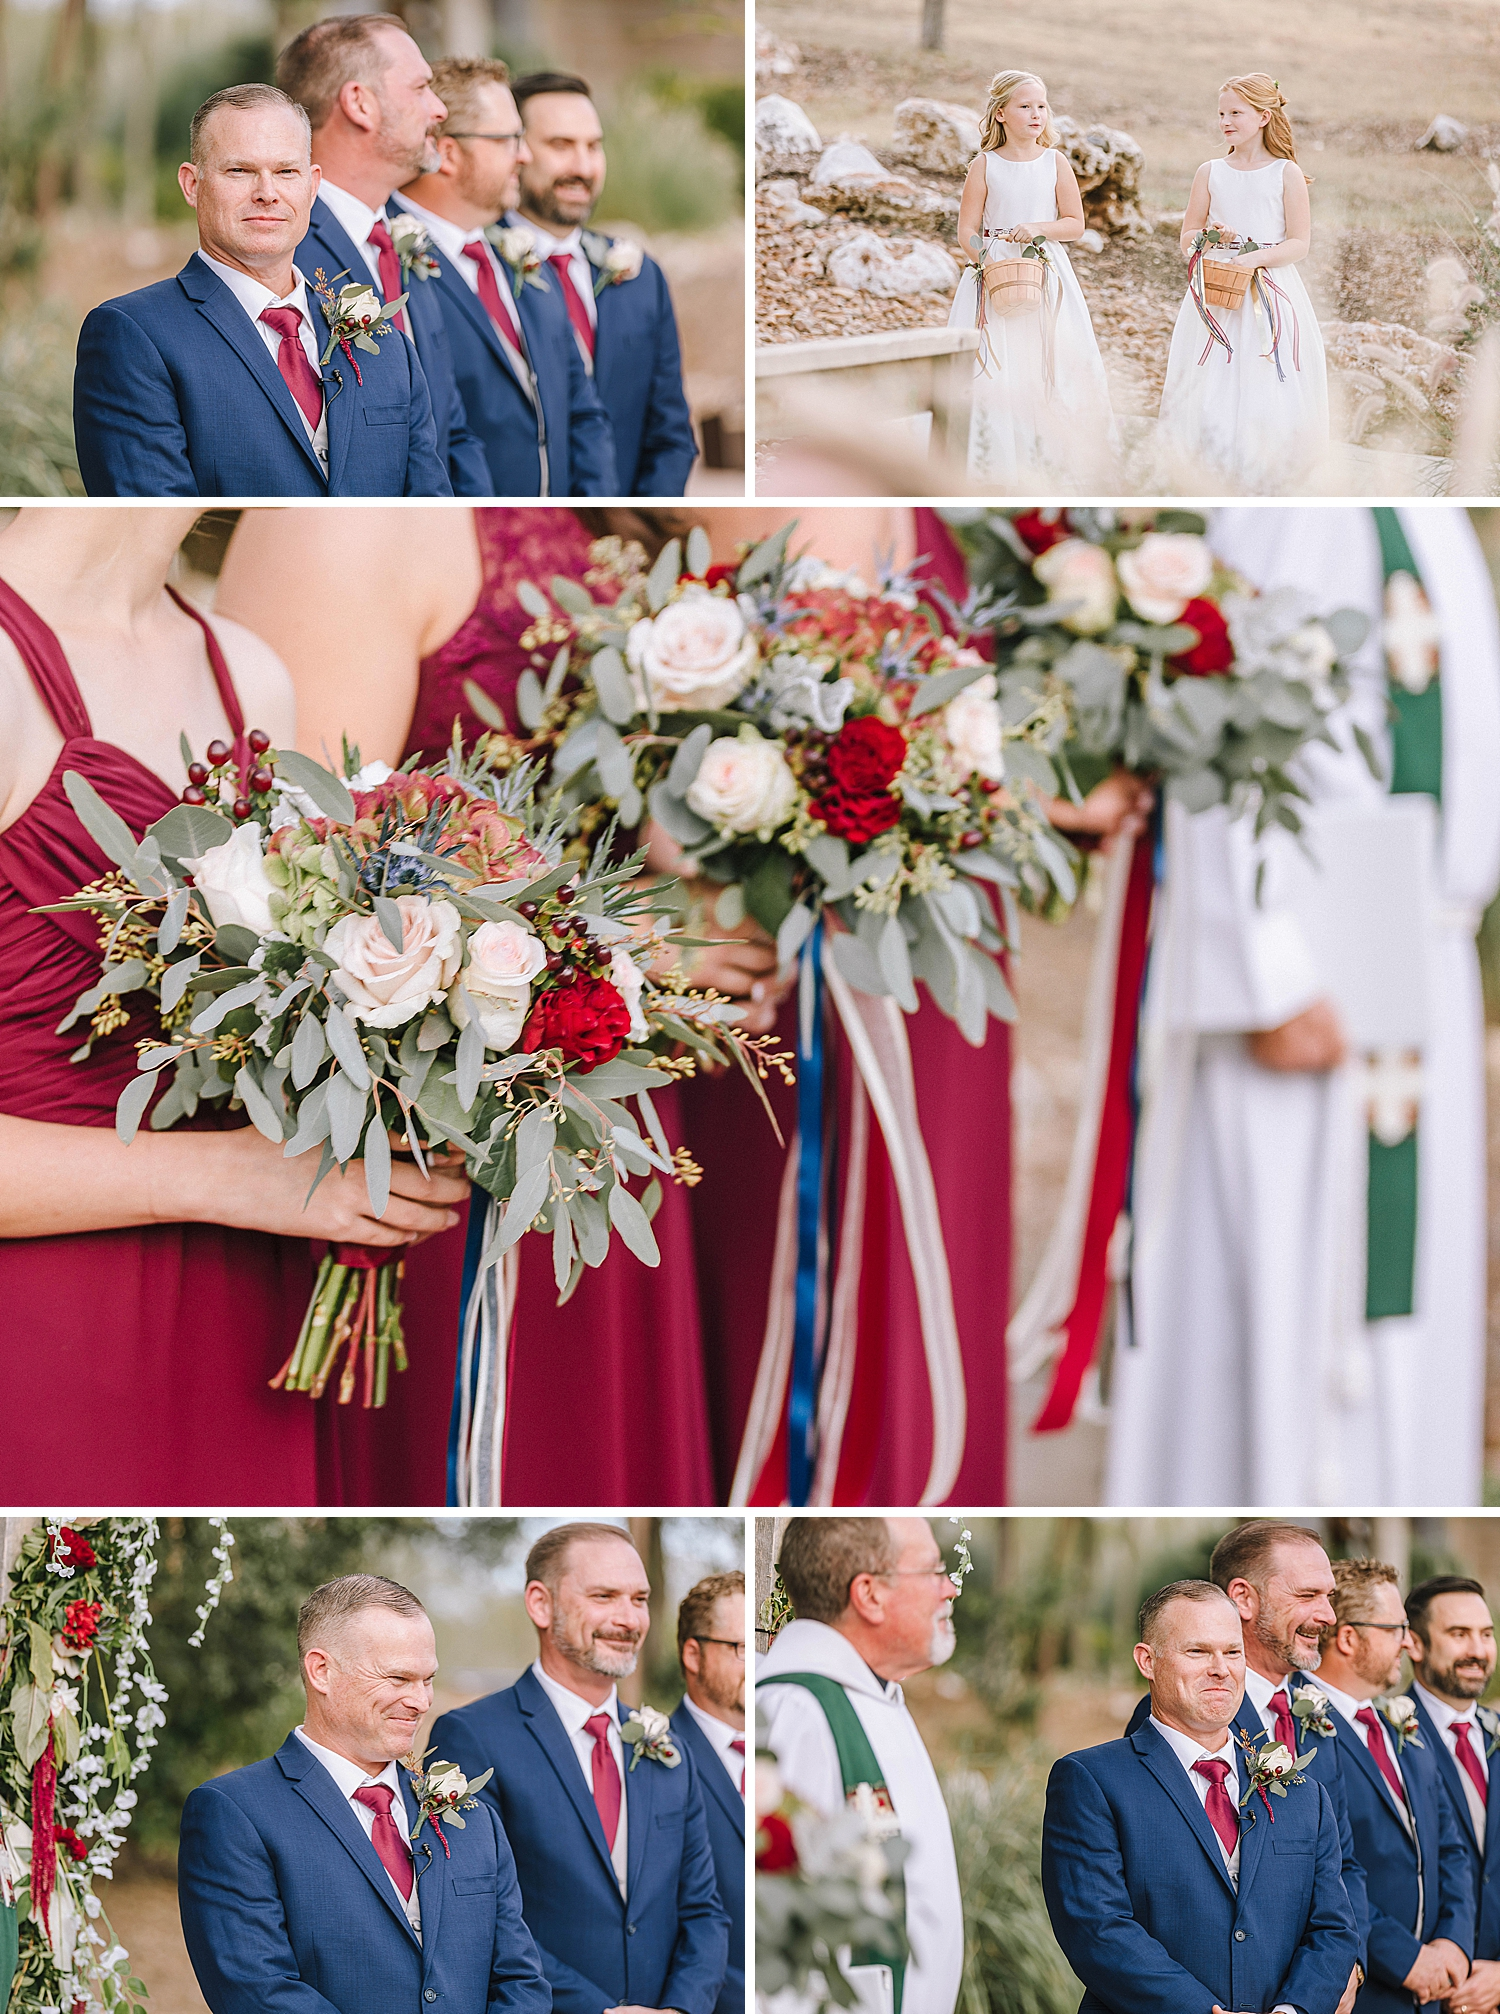 Geronimo-Oaks-Wedding-Venue-Seguin-Texas-Elegant-Navy-Burgundy-Wedding-Carly-Barton-Photography_0025.jpg